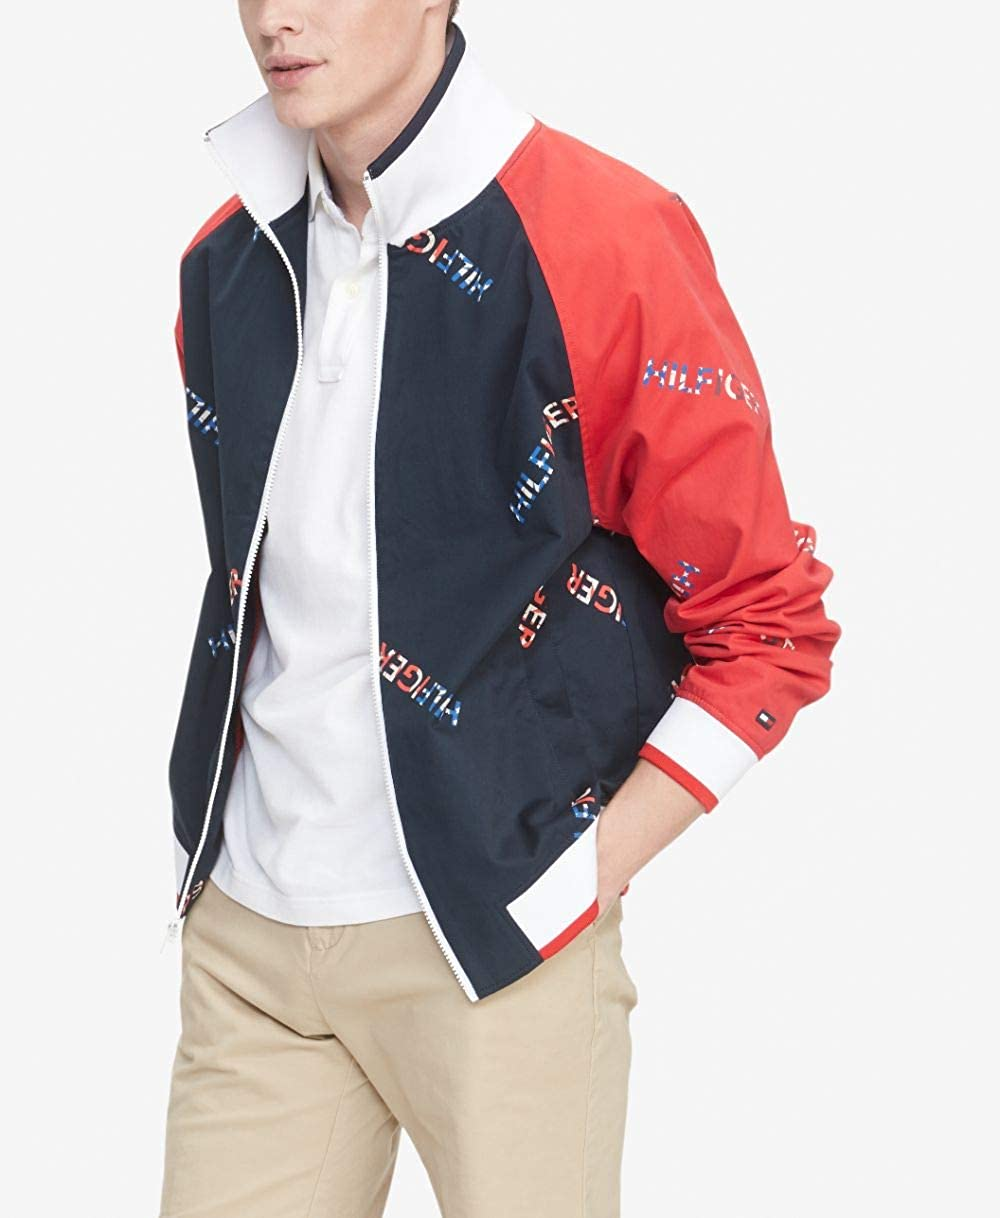 Tommy Hilfiger Mens Stand Collar Retro Colorblock Track Jacket